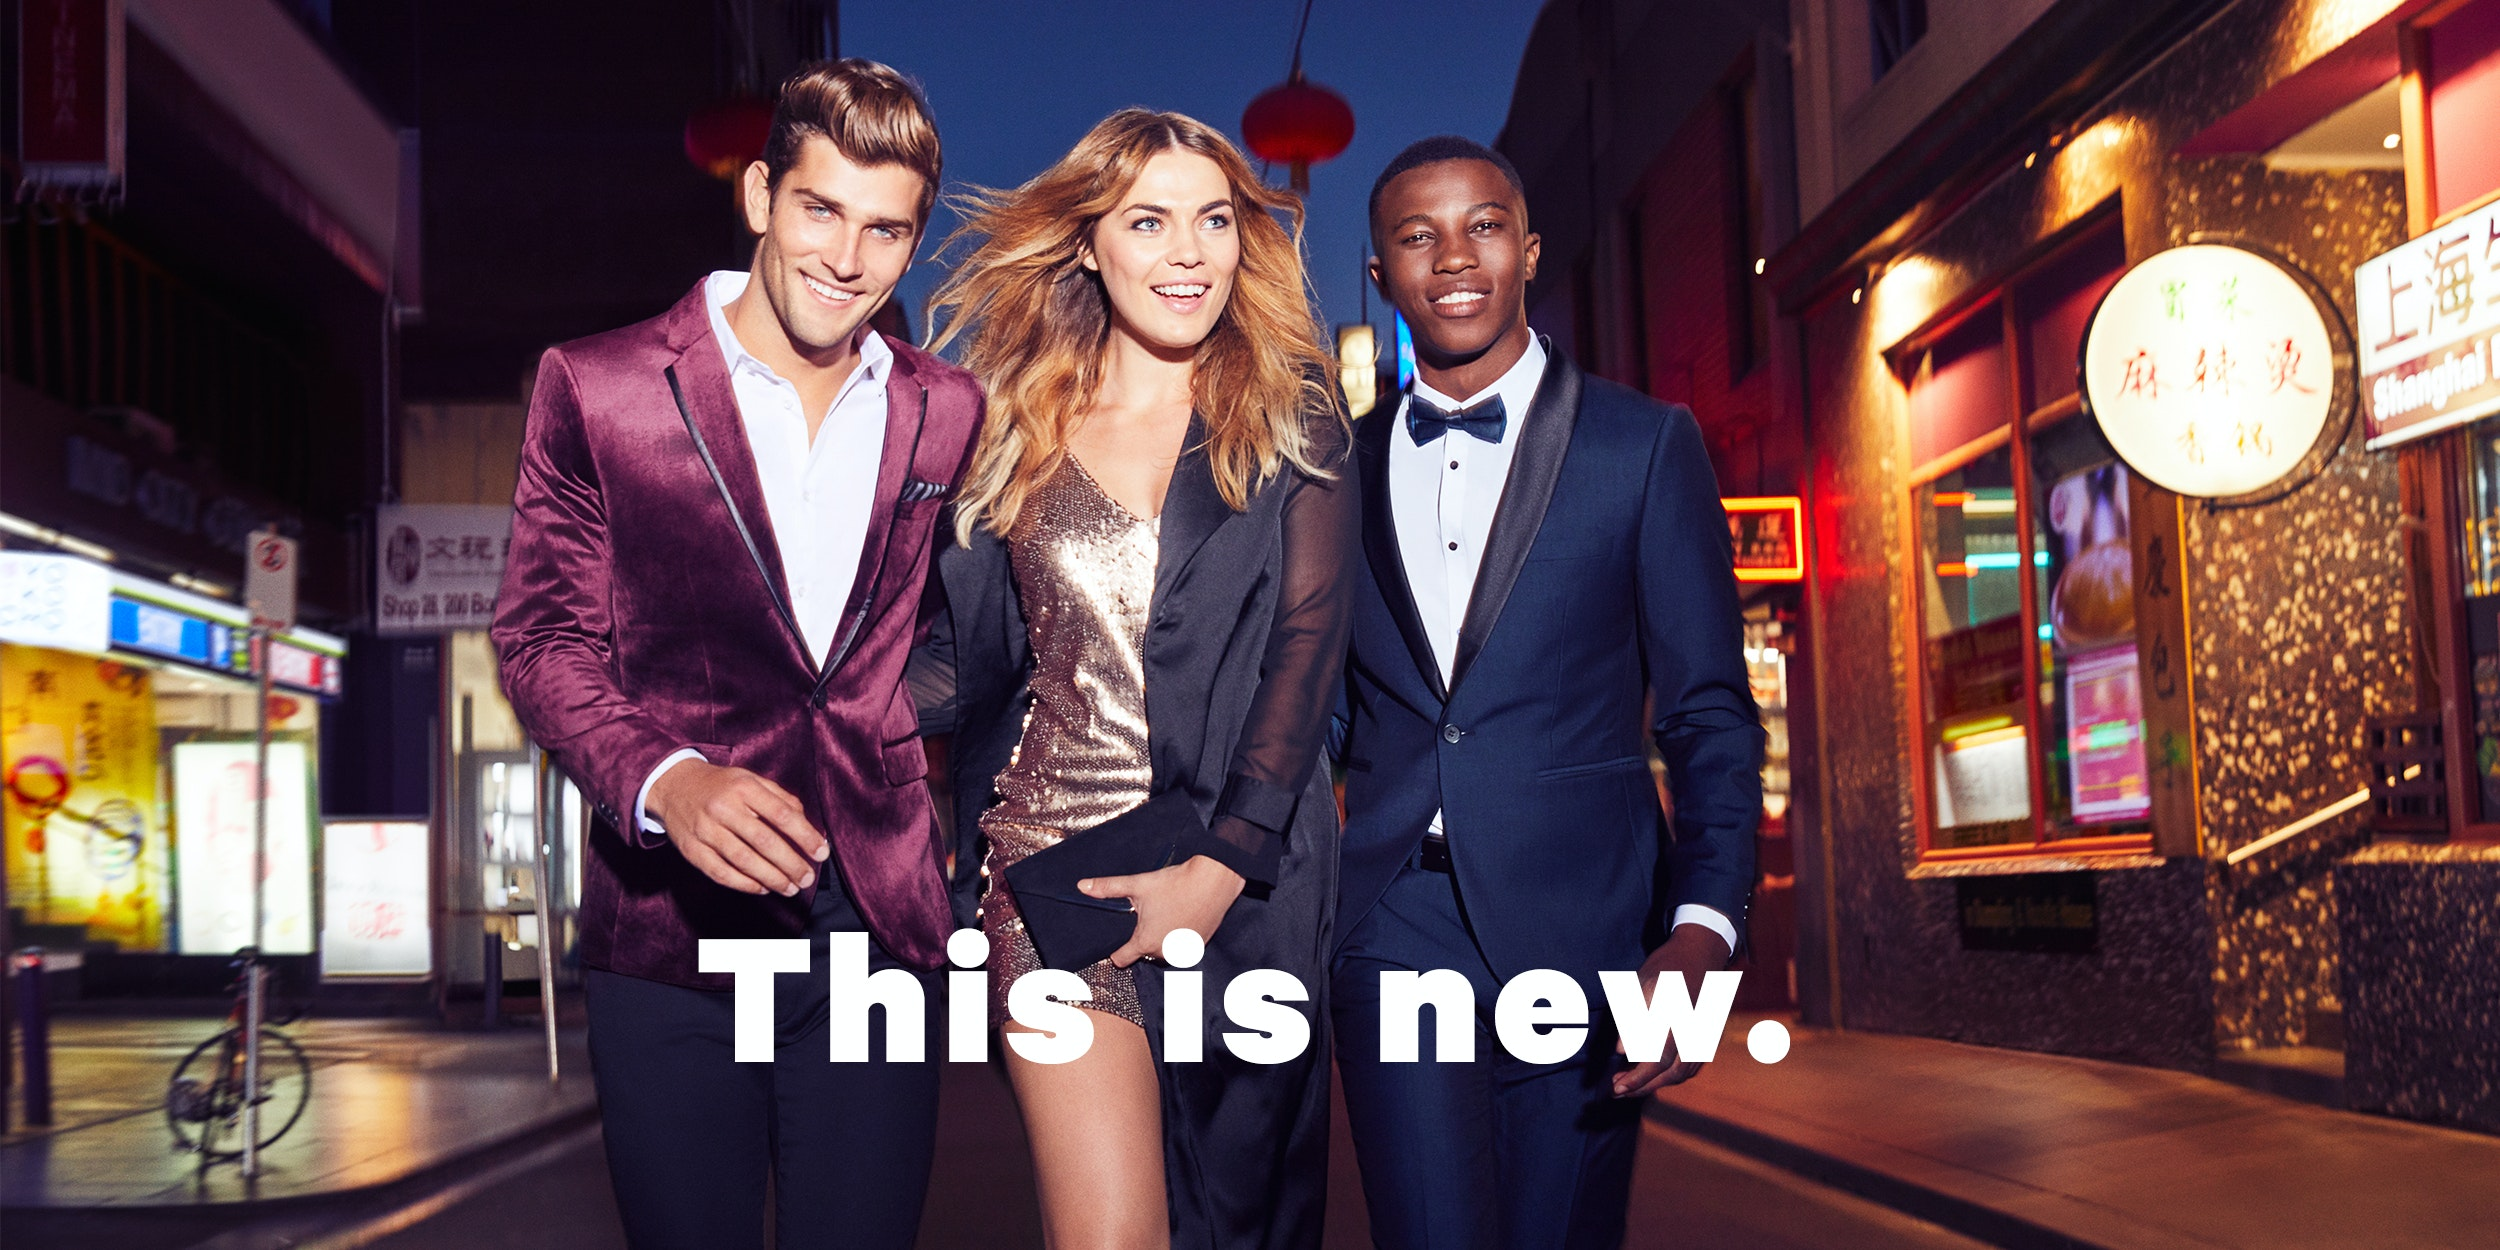 This is New: the yd. latest mens clothing collection campaign